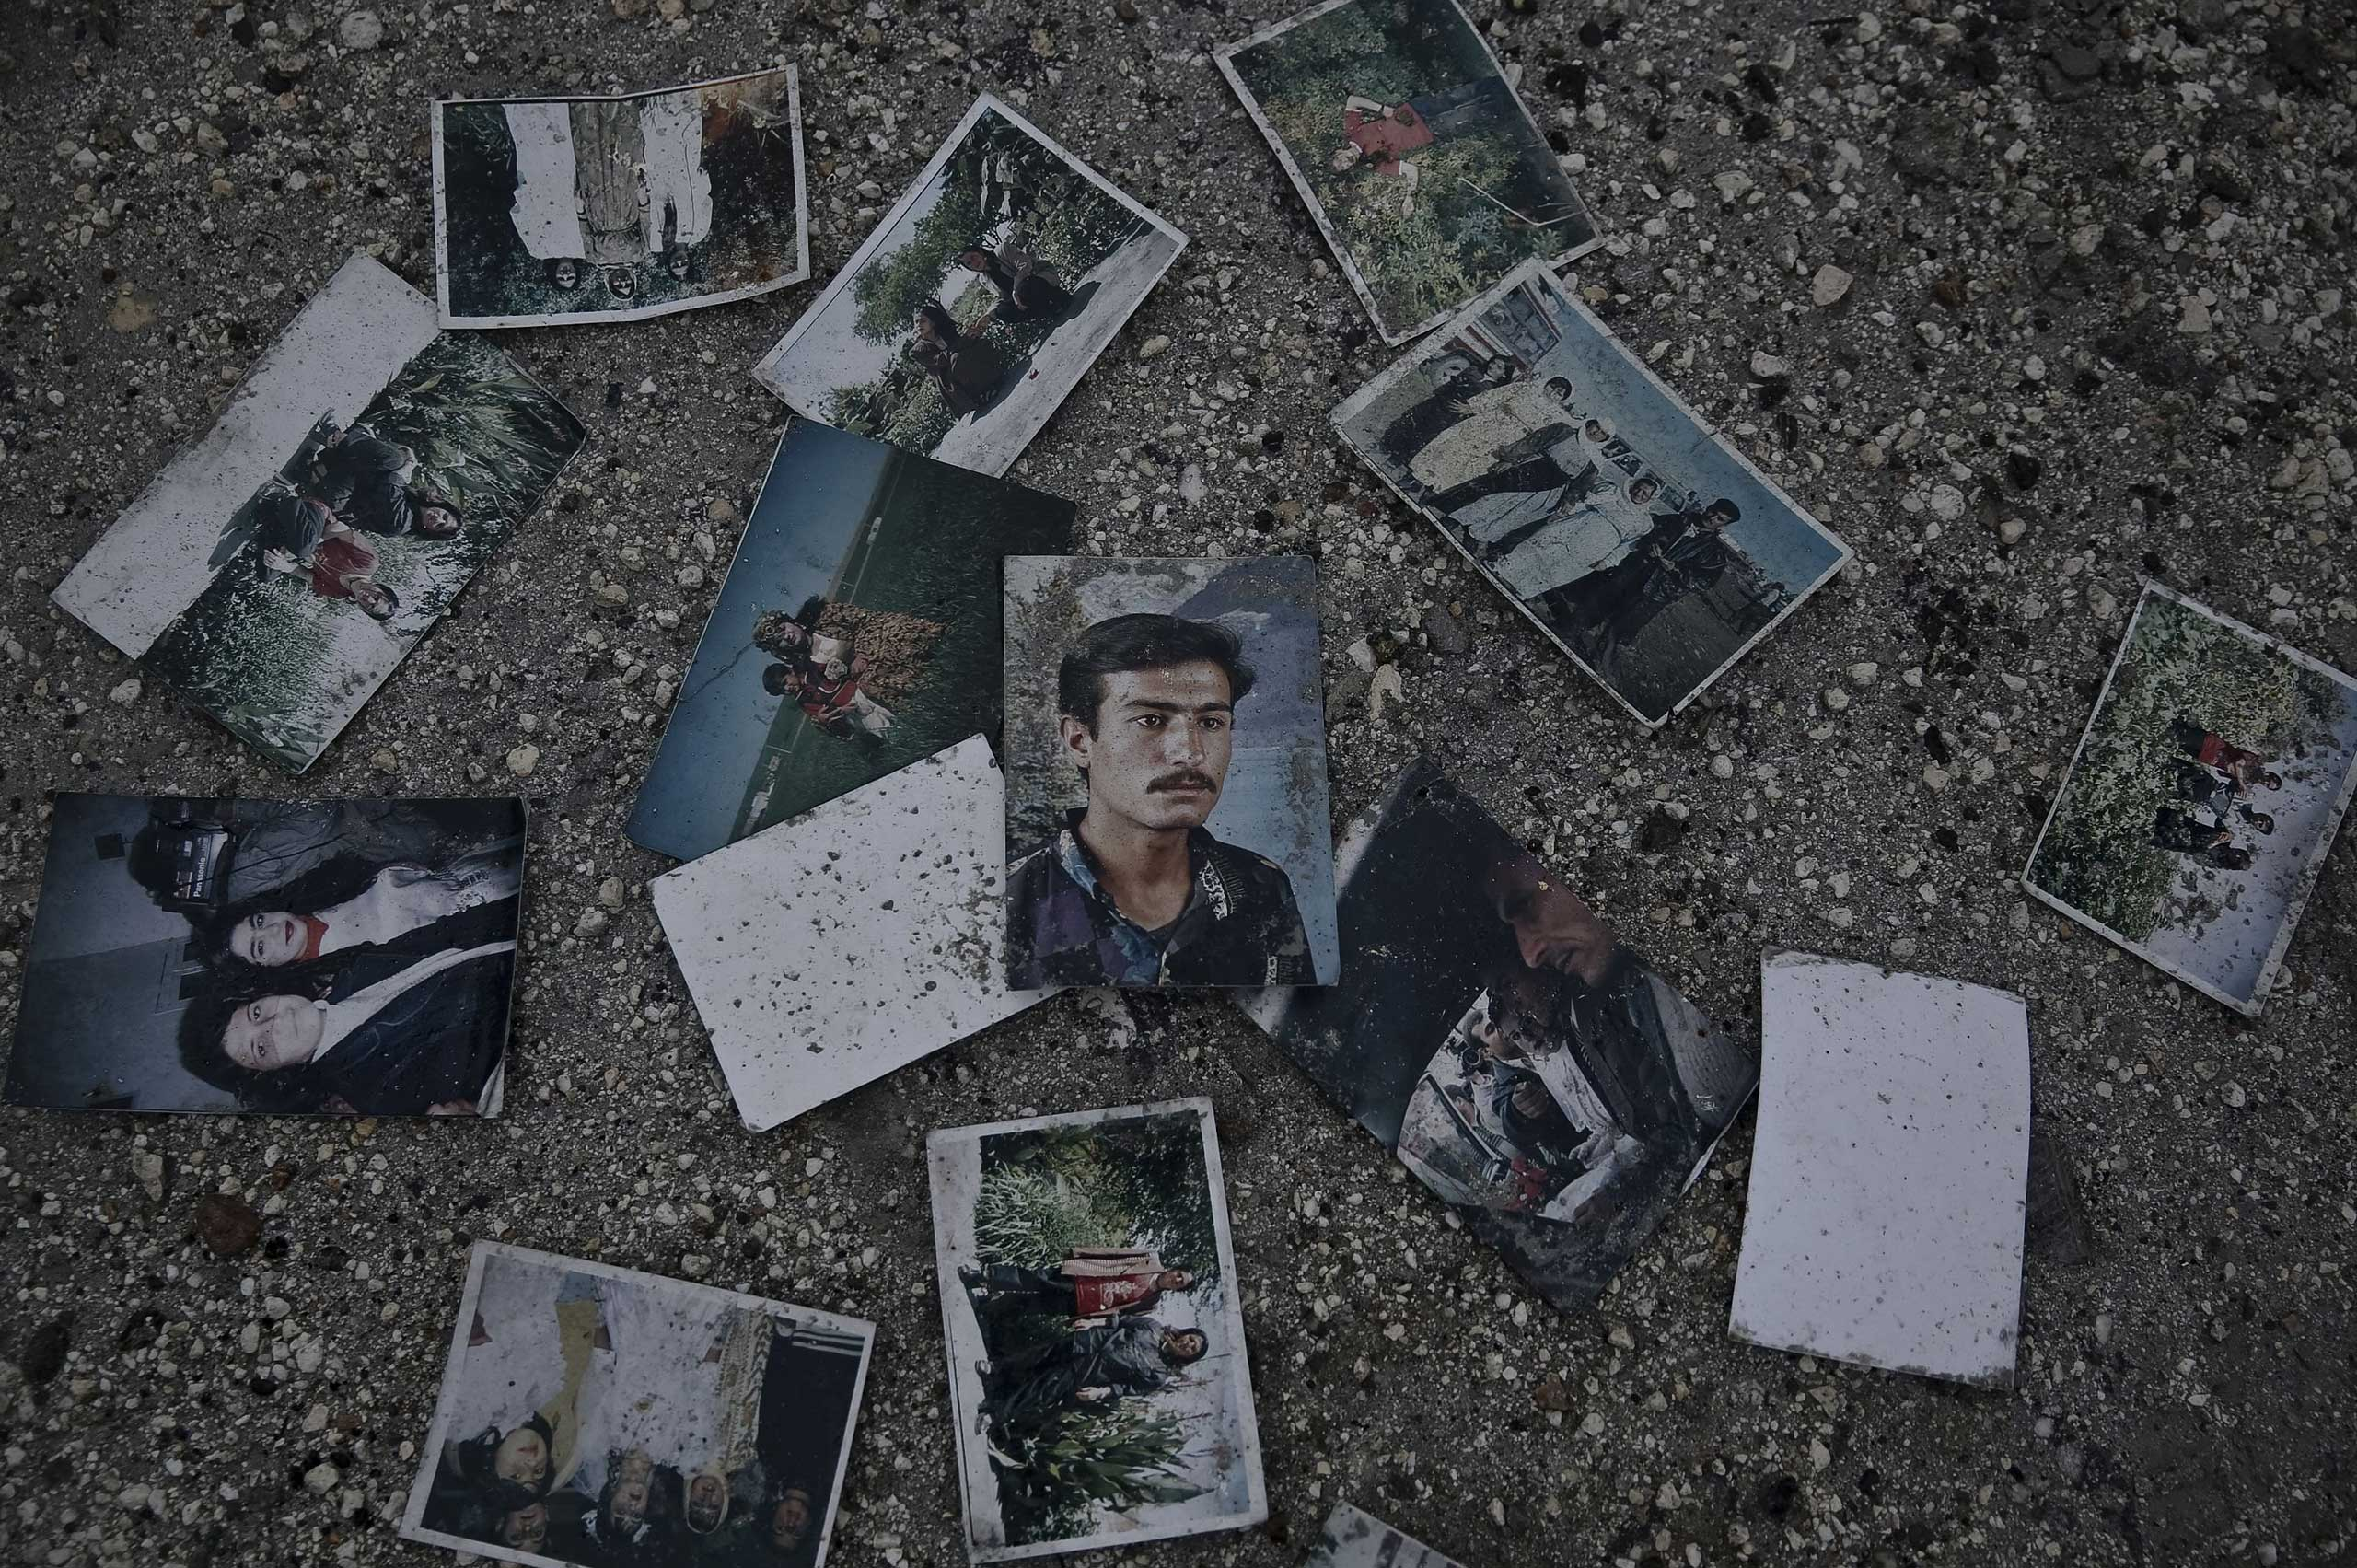 Jan. 31, 2015. Photographs of residents are seen scattered in the ruins of the Syrian border town of Kobane. At least 80 percent of town is destroyed by the suicide bombers of ISIS and airstrikes by the international anti-ISIS coalition.